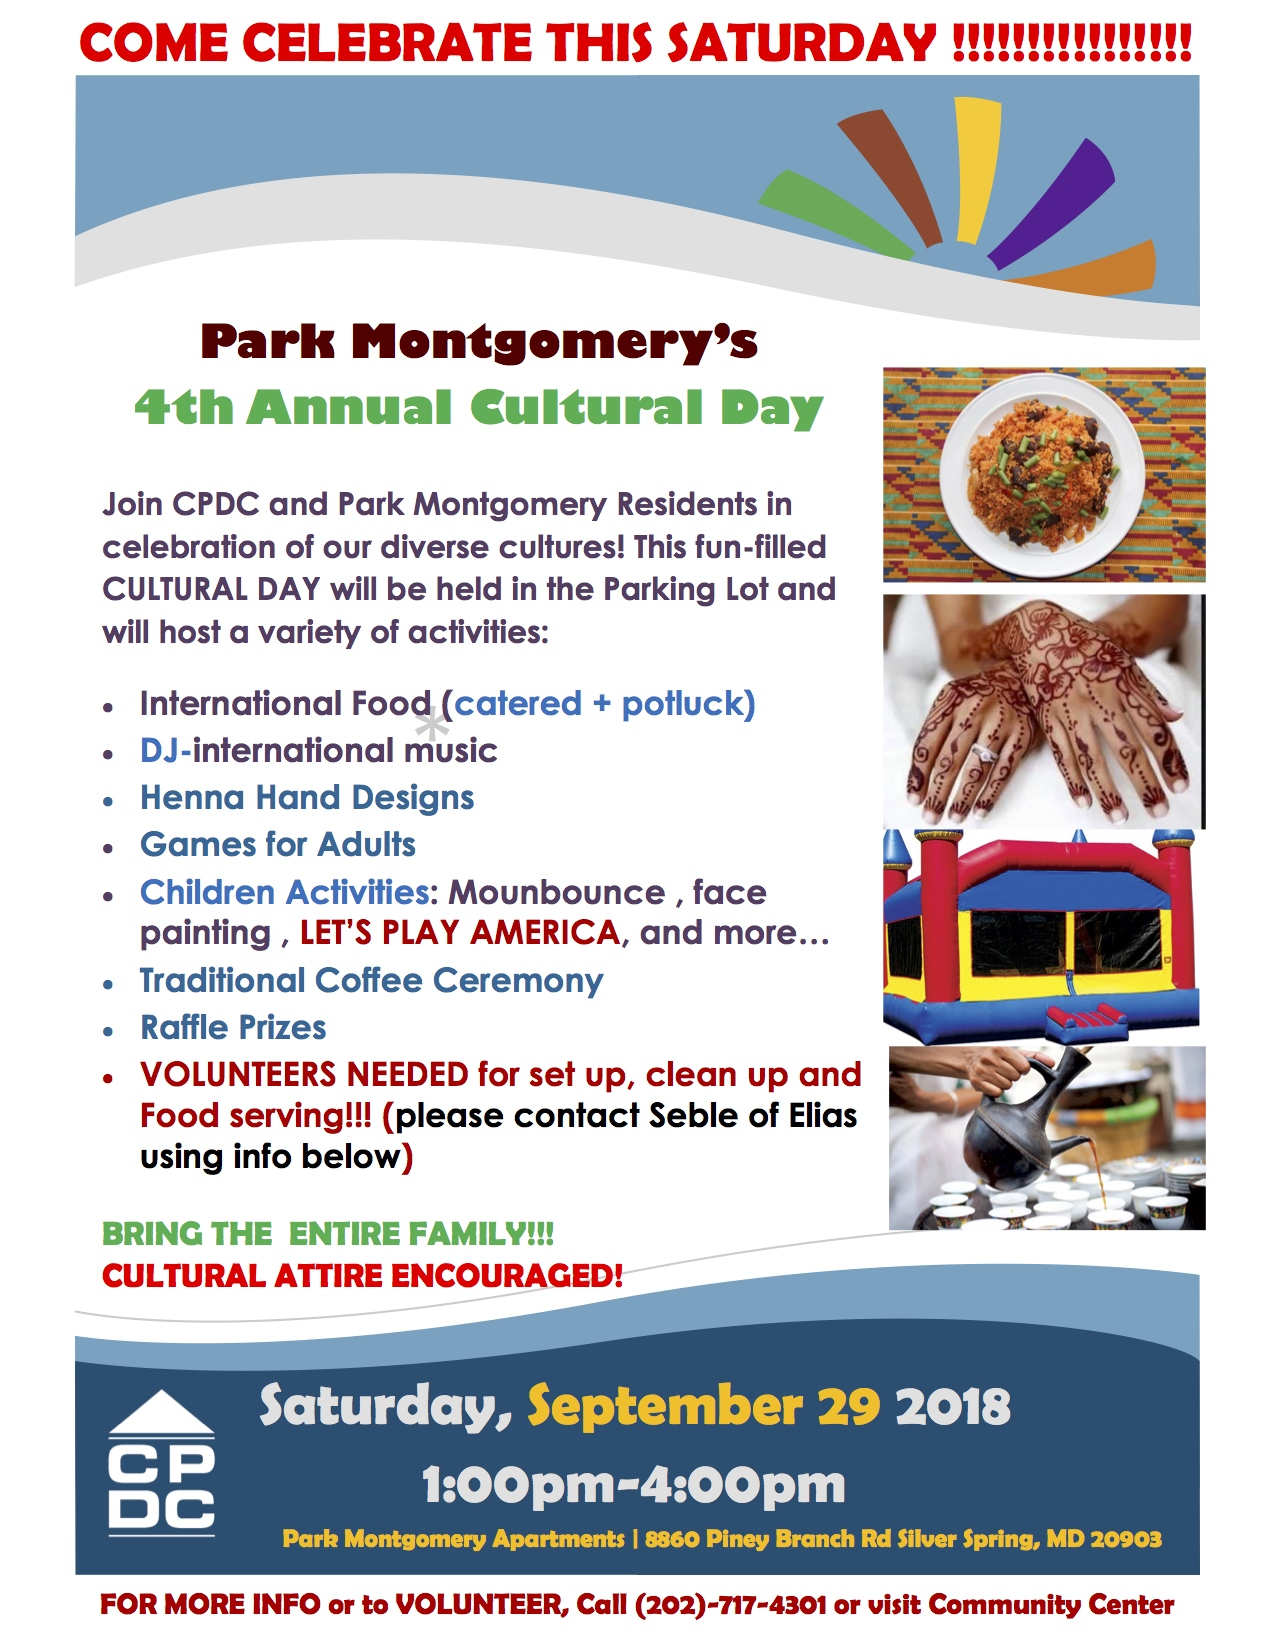 Park Montgomery Cultural Day Flyer-9-29-18.jpg